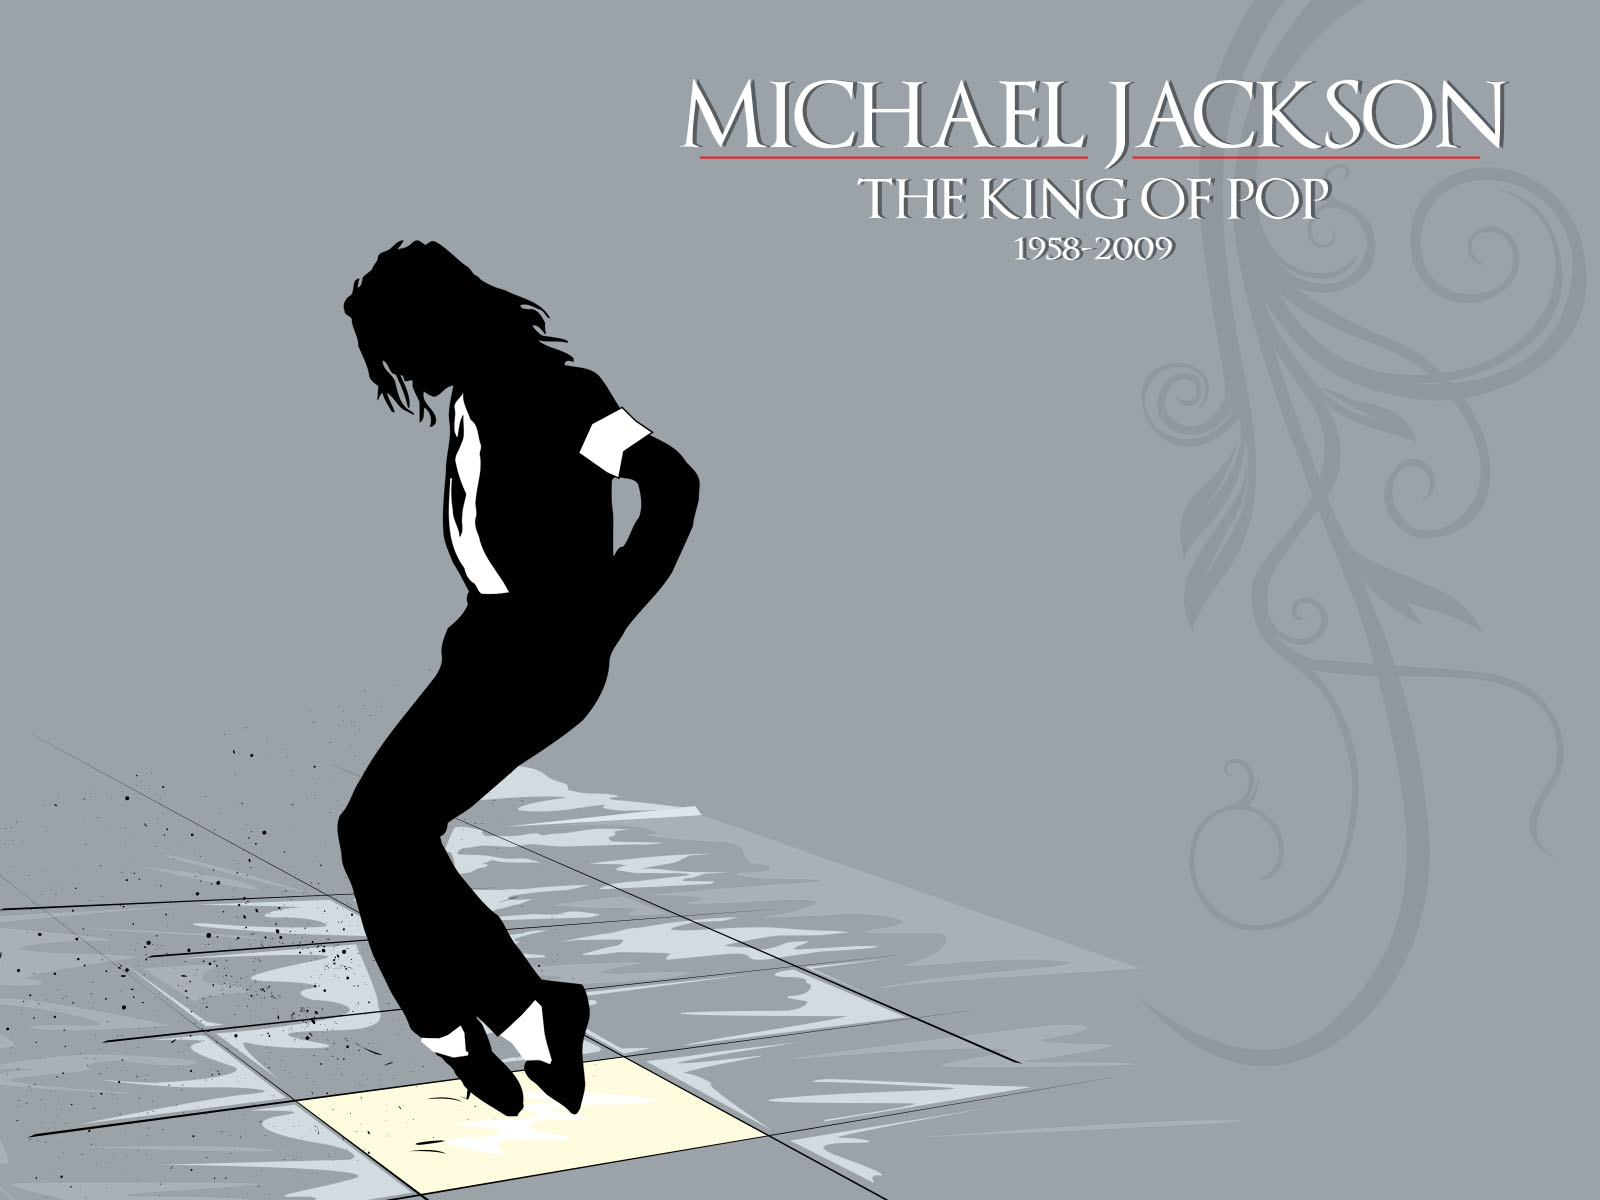 King of pop micheal jackson backgrounds music templates free ppt king of pop micheal jackson ppt themes toneelgroepblik Image collections